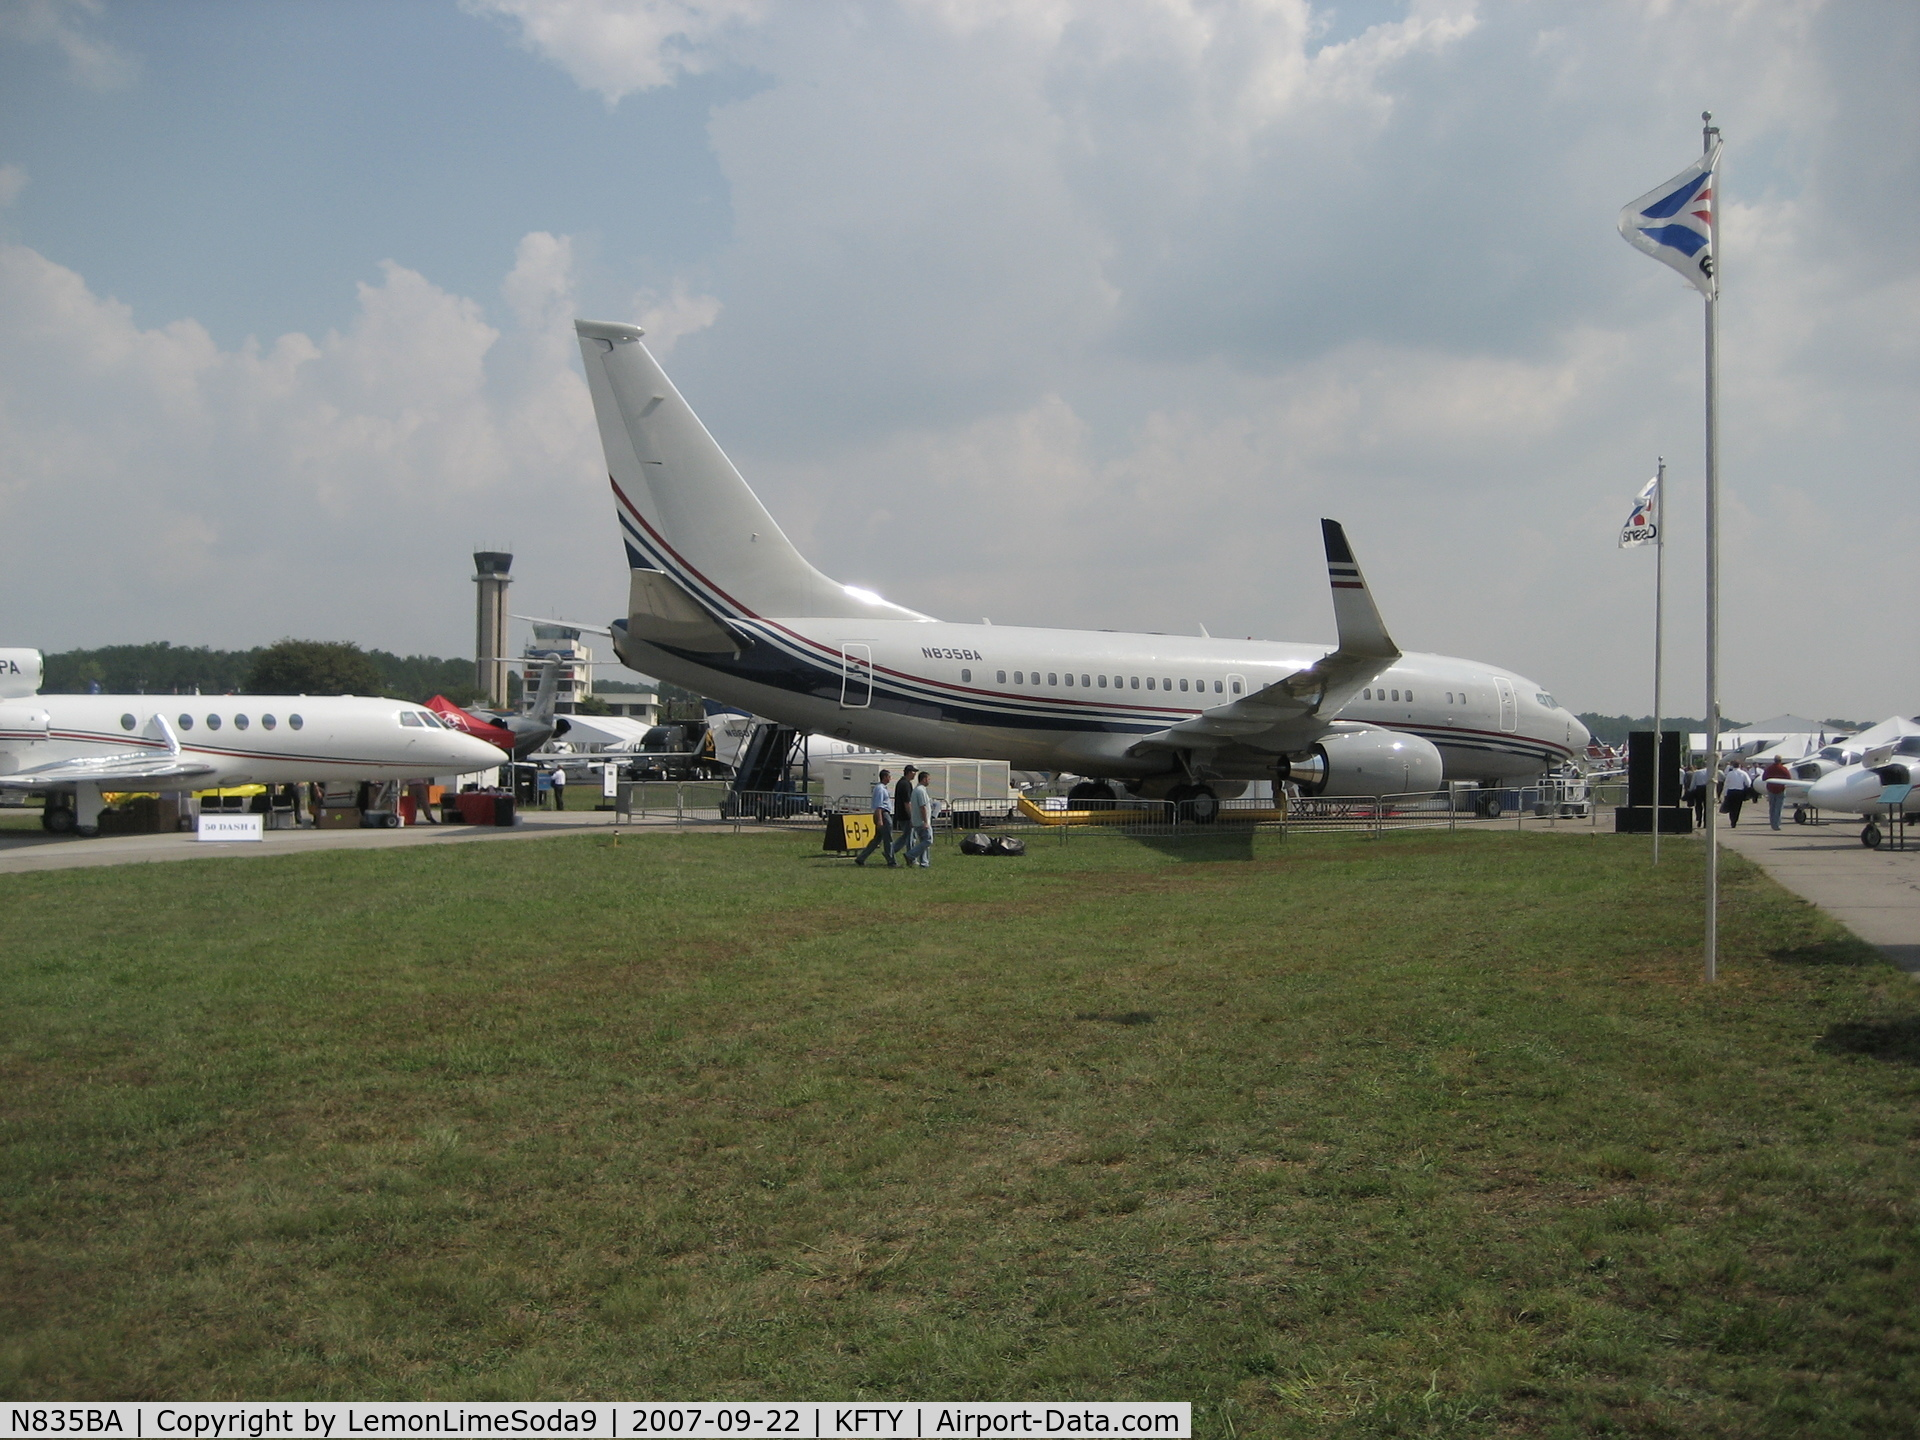 N835BA, 2001 Boeing 737-7BC C/N 30572, Just another day at the airport.